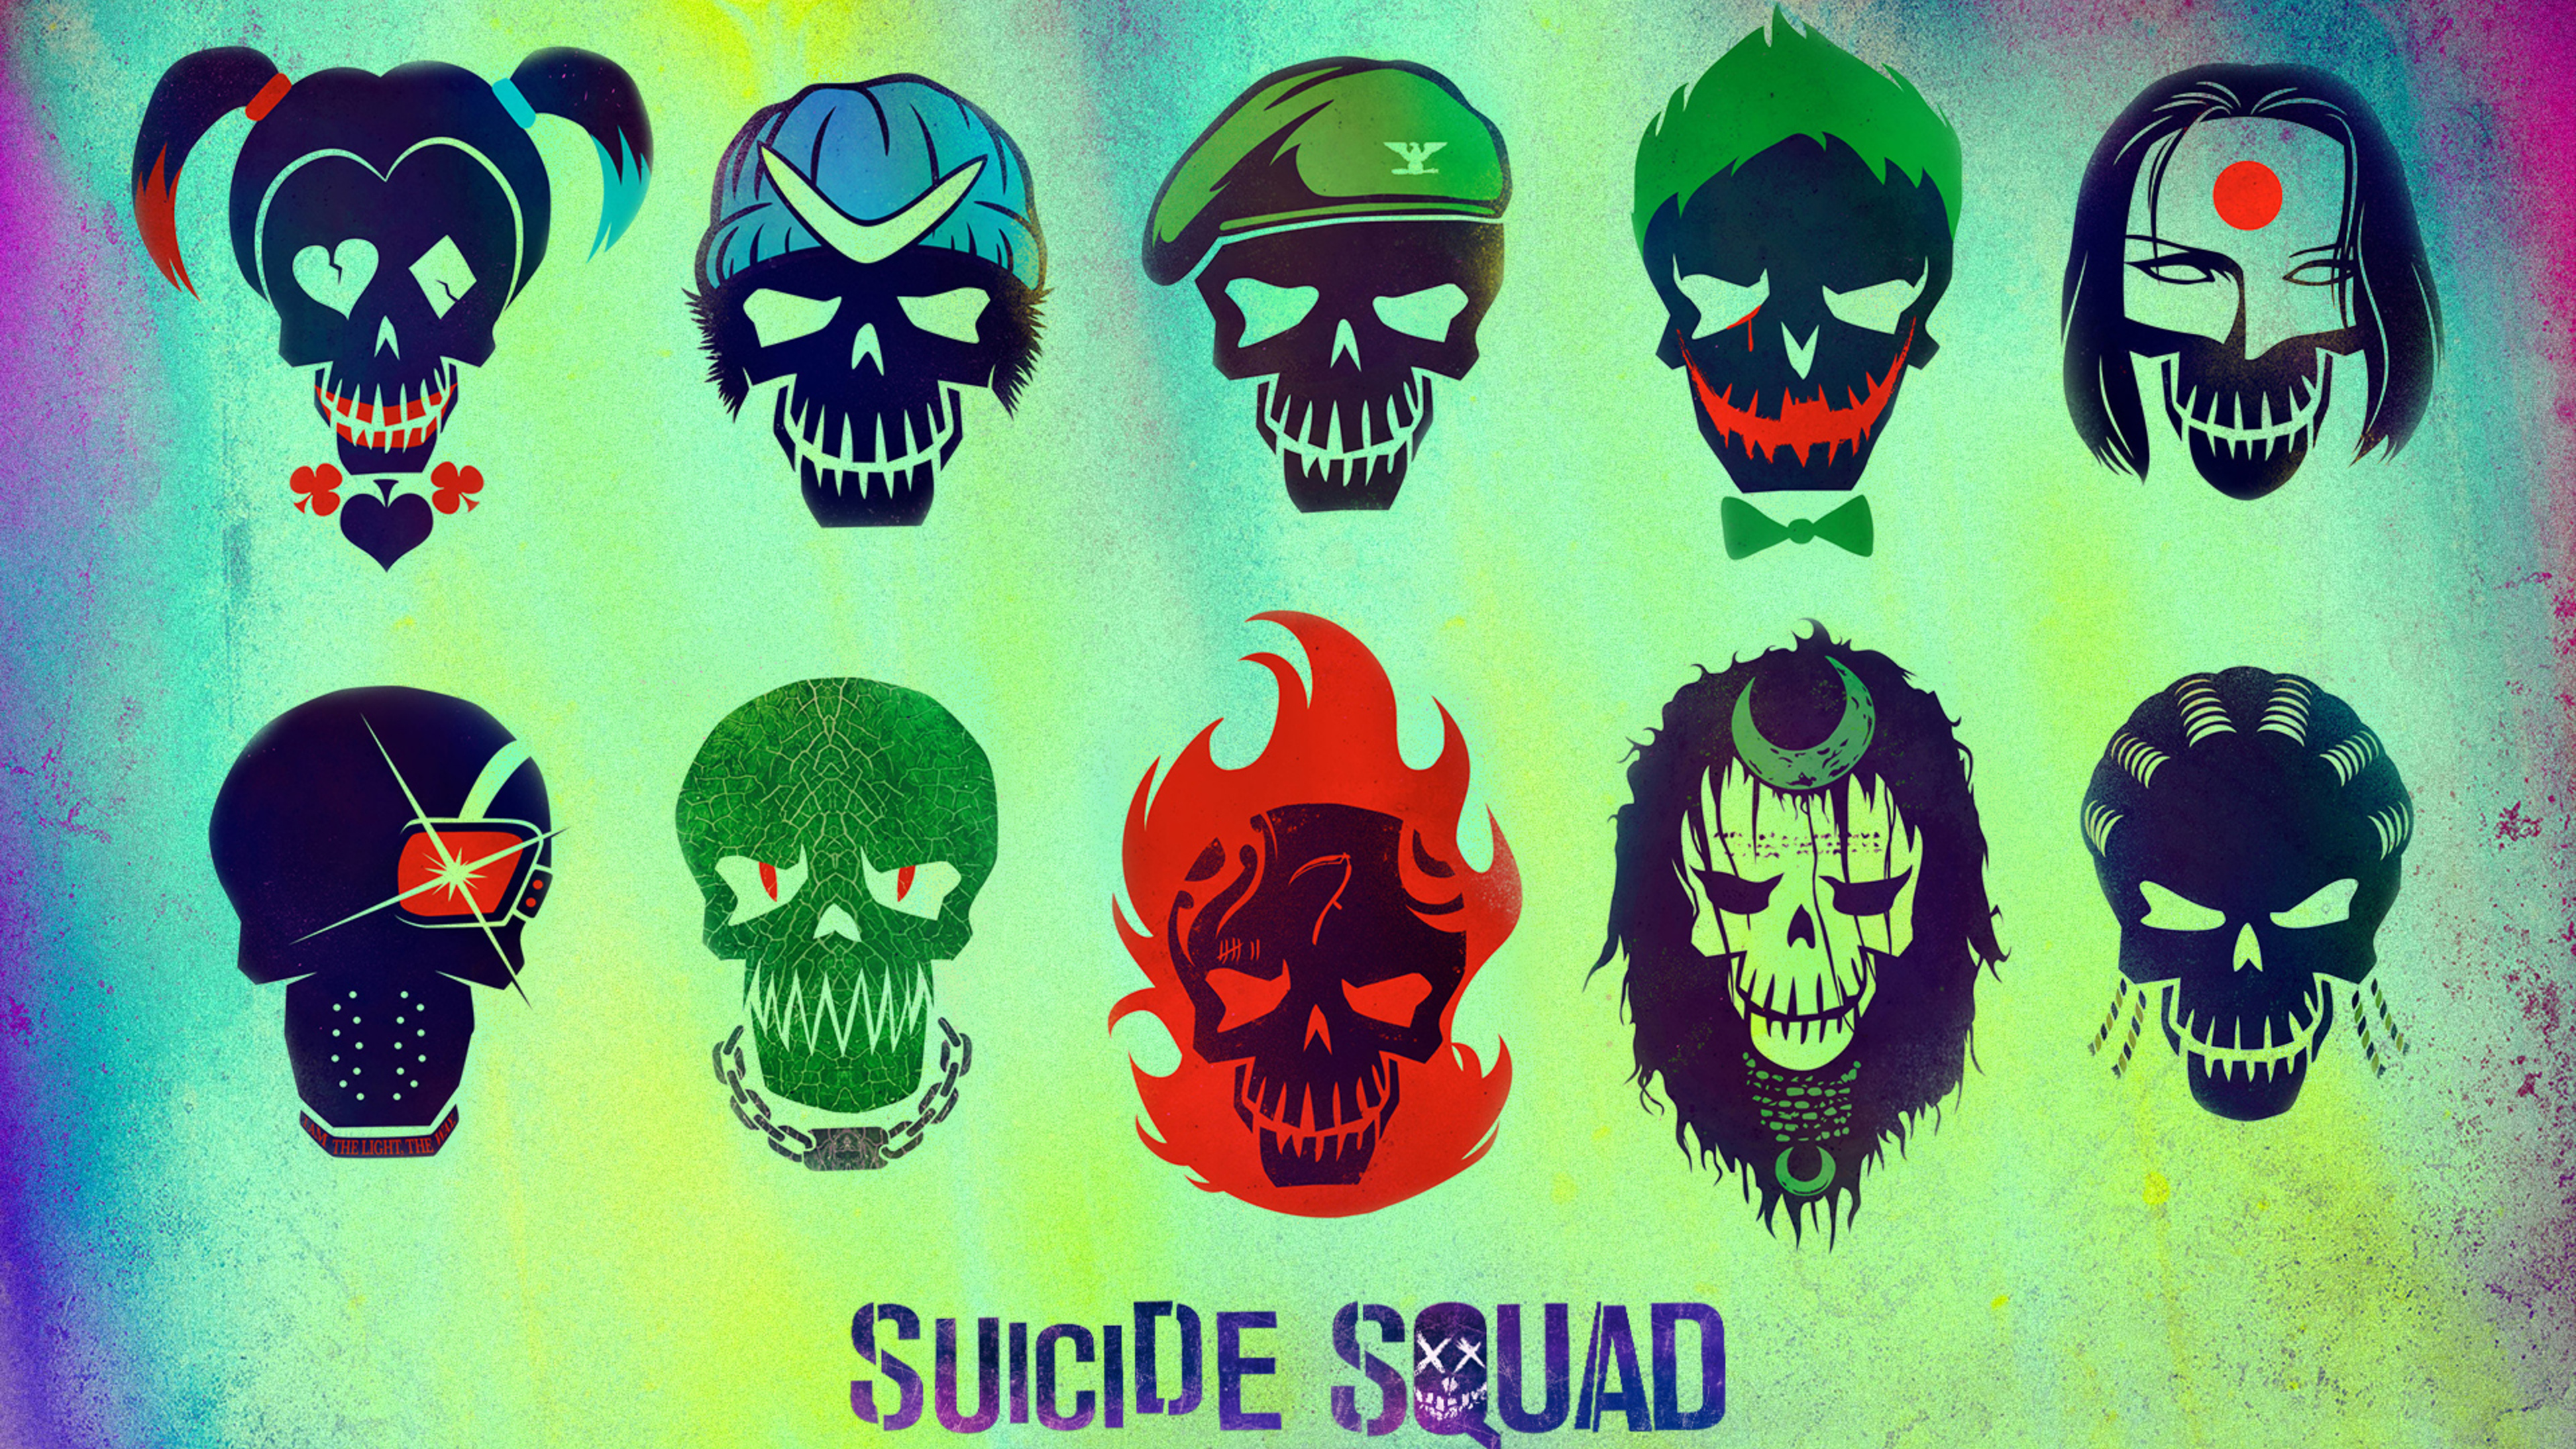 http://hdqwalls.com/download/suicide-squad-characters-minimalism-image-3840x2160.jpg